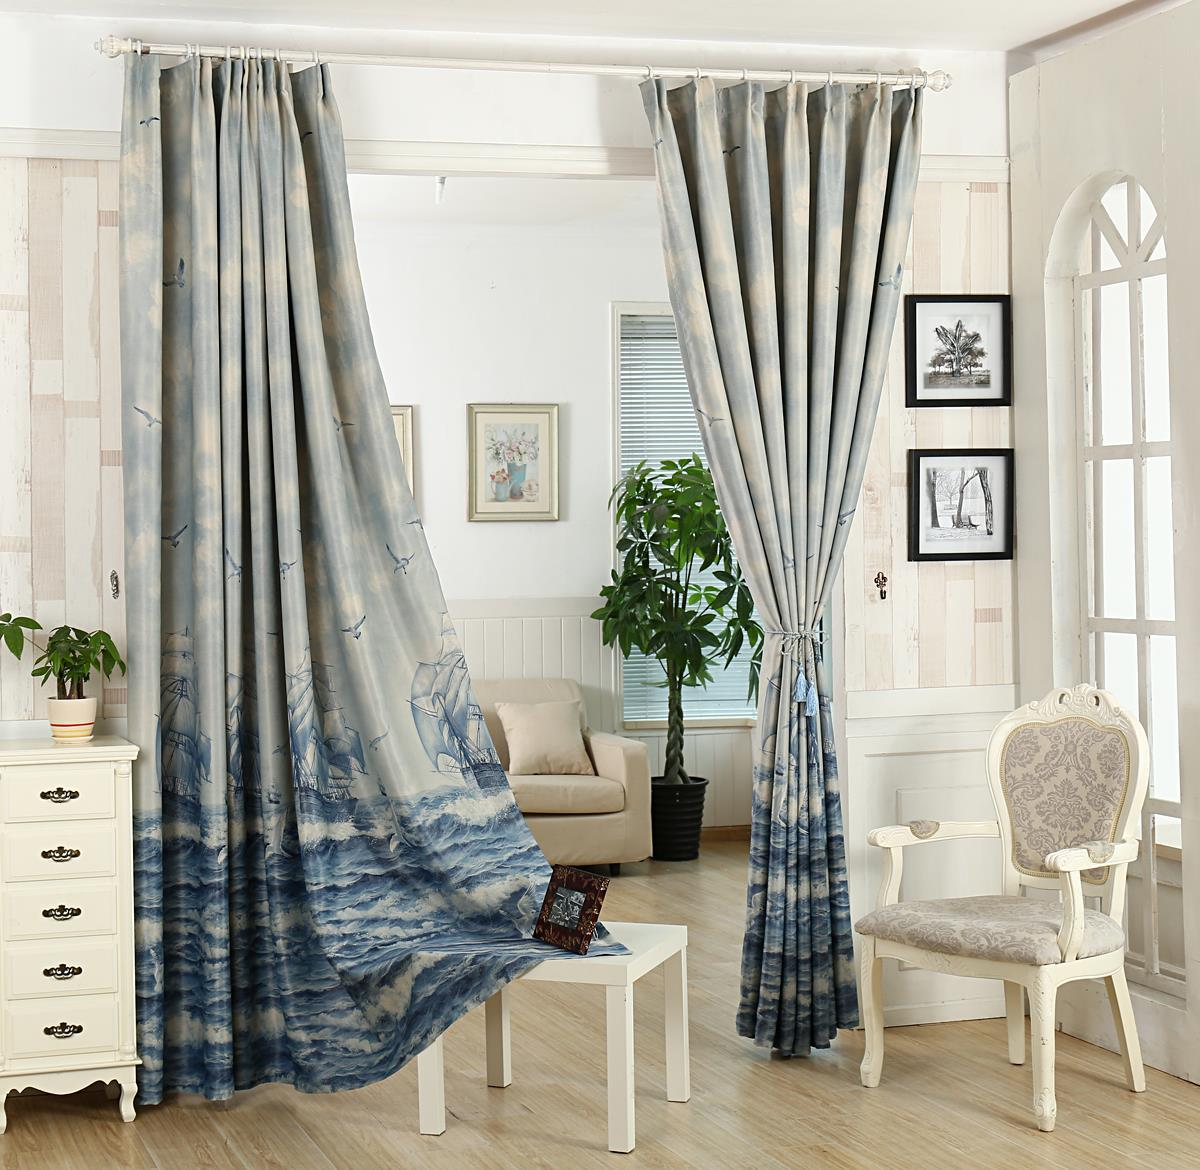 New Arrival Blue Sea Shade Cloth Curtains Blue Boat Curtains For Bedroom  And Living Room Free